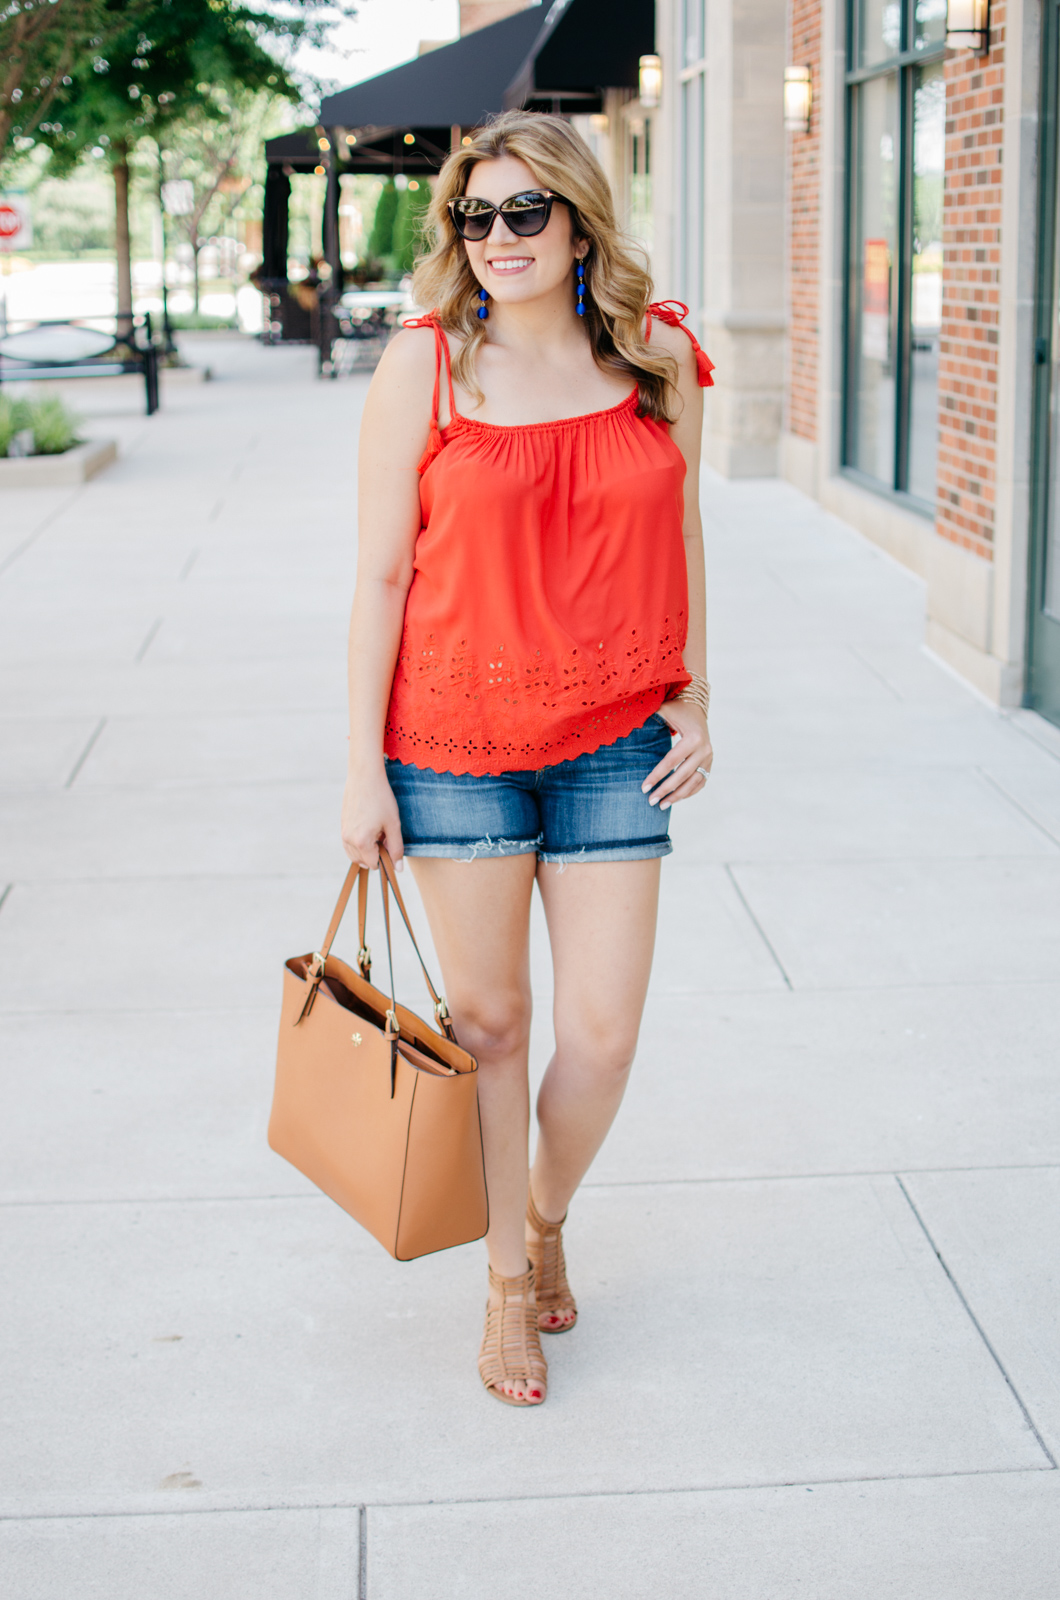 second trimester outfit for summer - tassel tank | For more cute maternity outfits, head to bylaurenm.com!